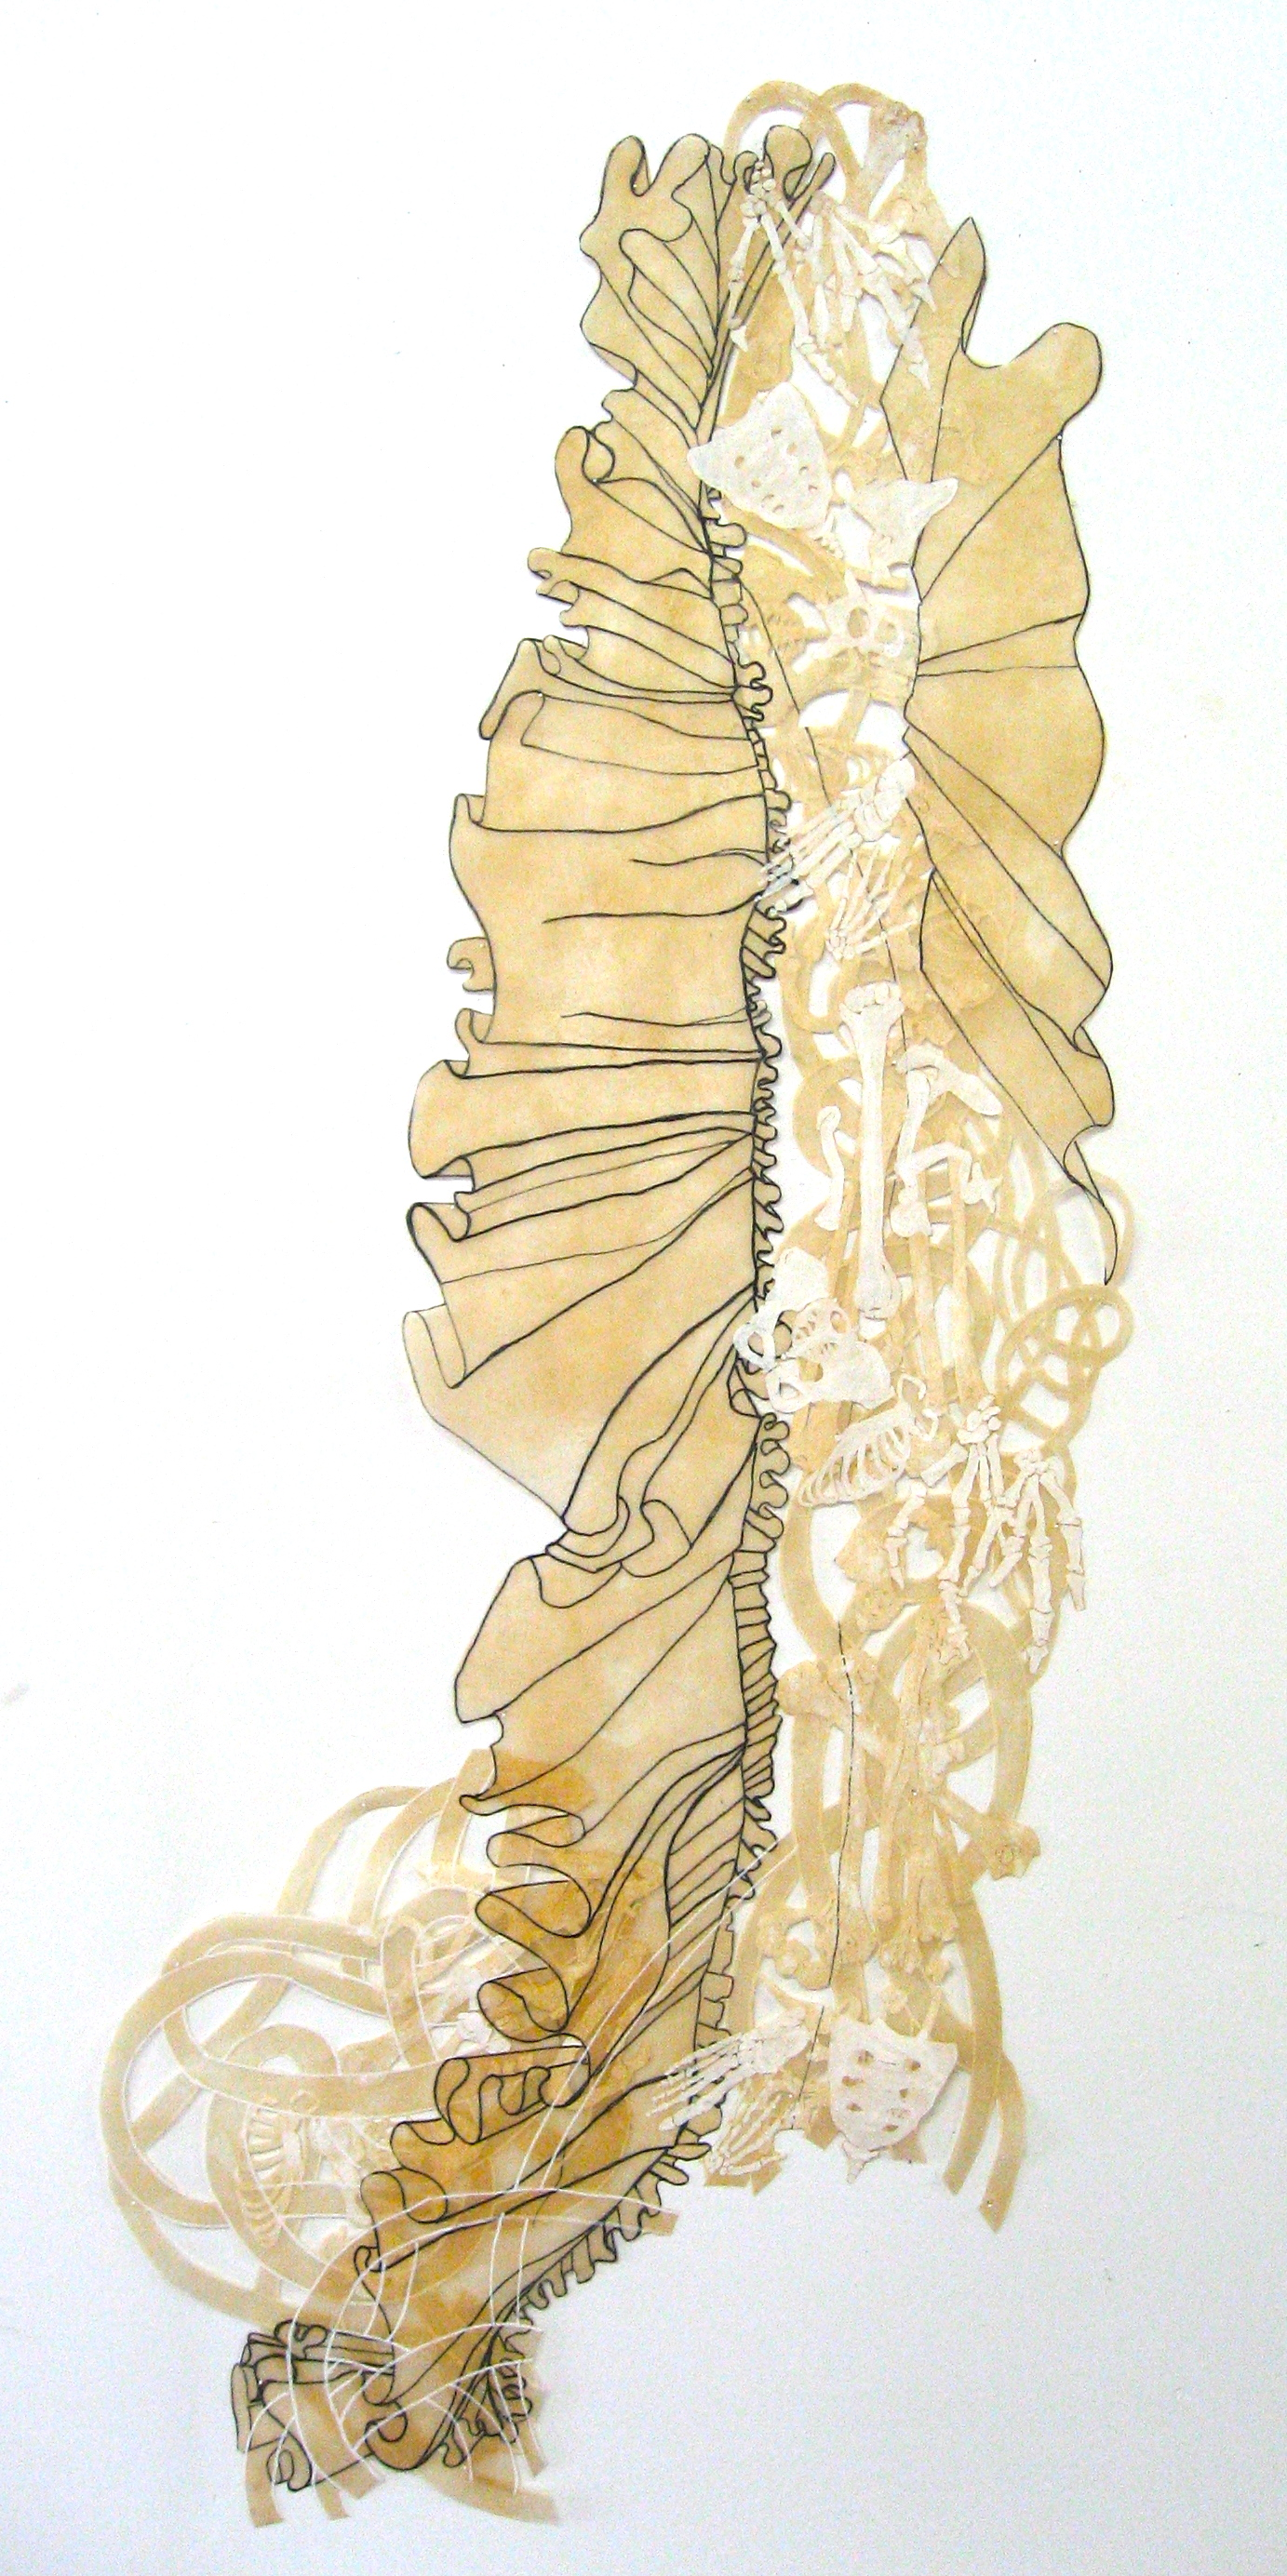 "Beach 40"" x 17"" ink, acrylic natural dyes, polyester"